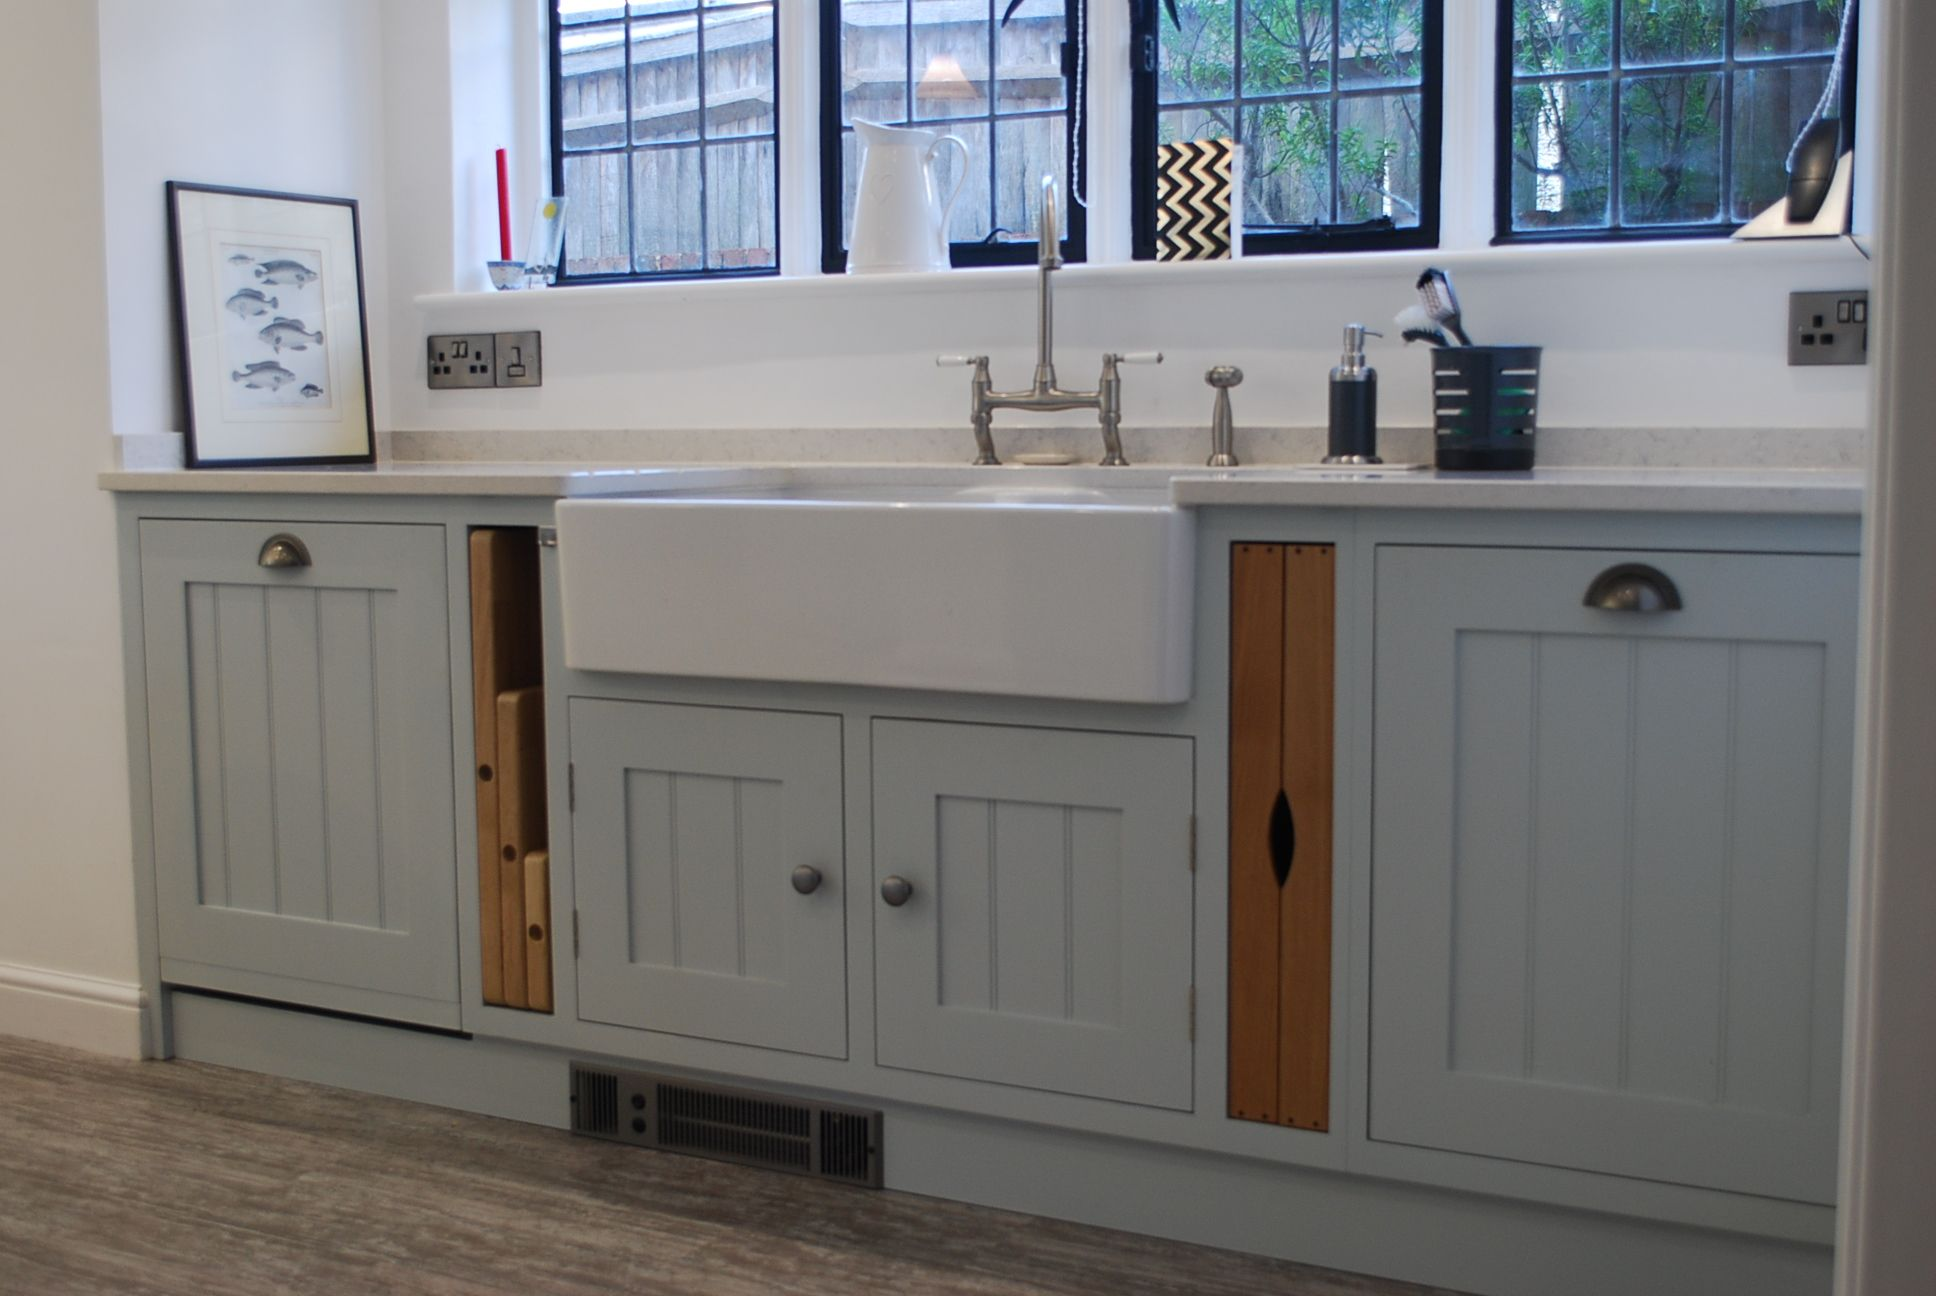 Pin By Korin Toledo On Shoreline Home Kitchen Cabinets Kitchen